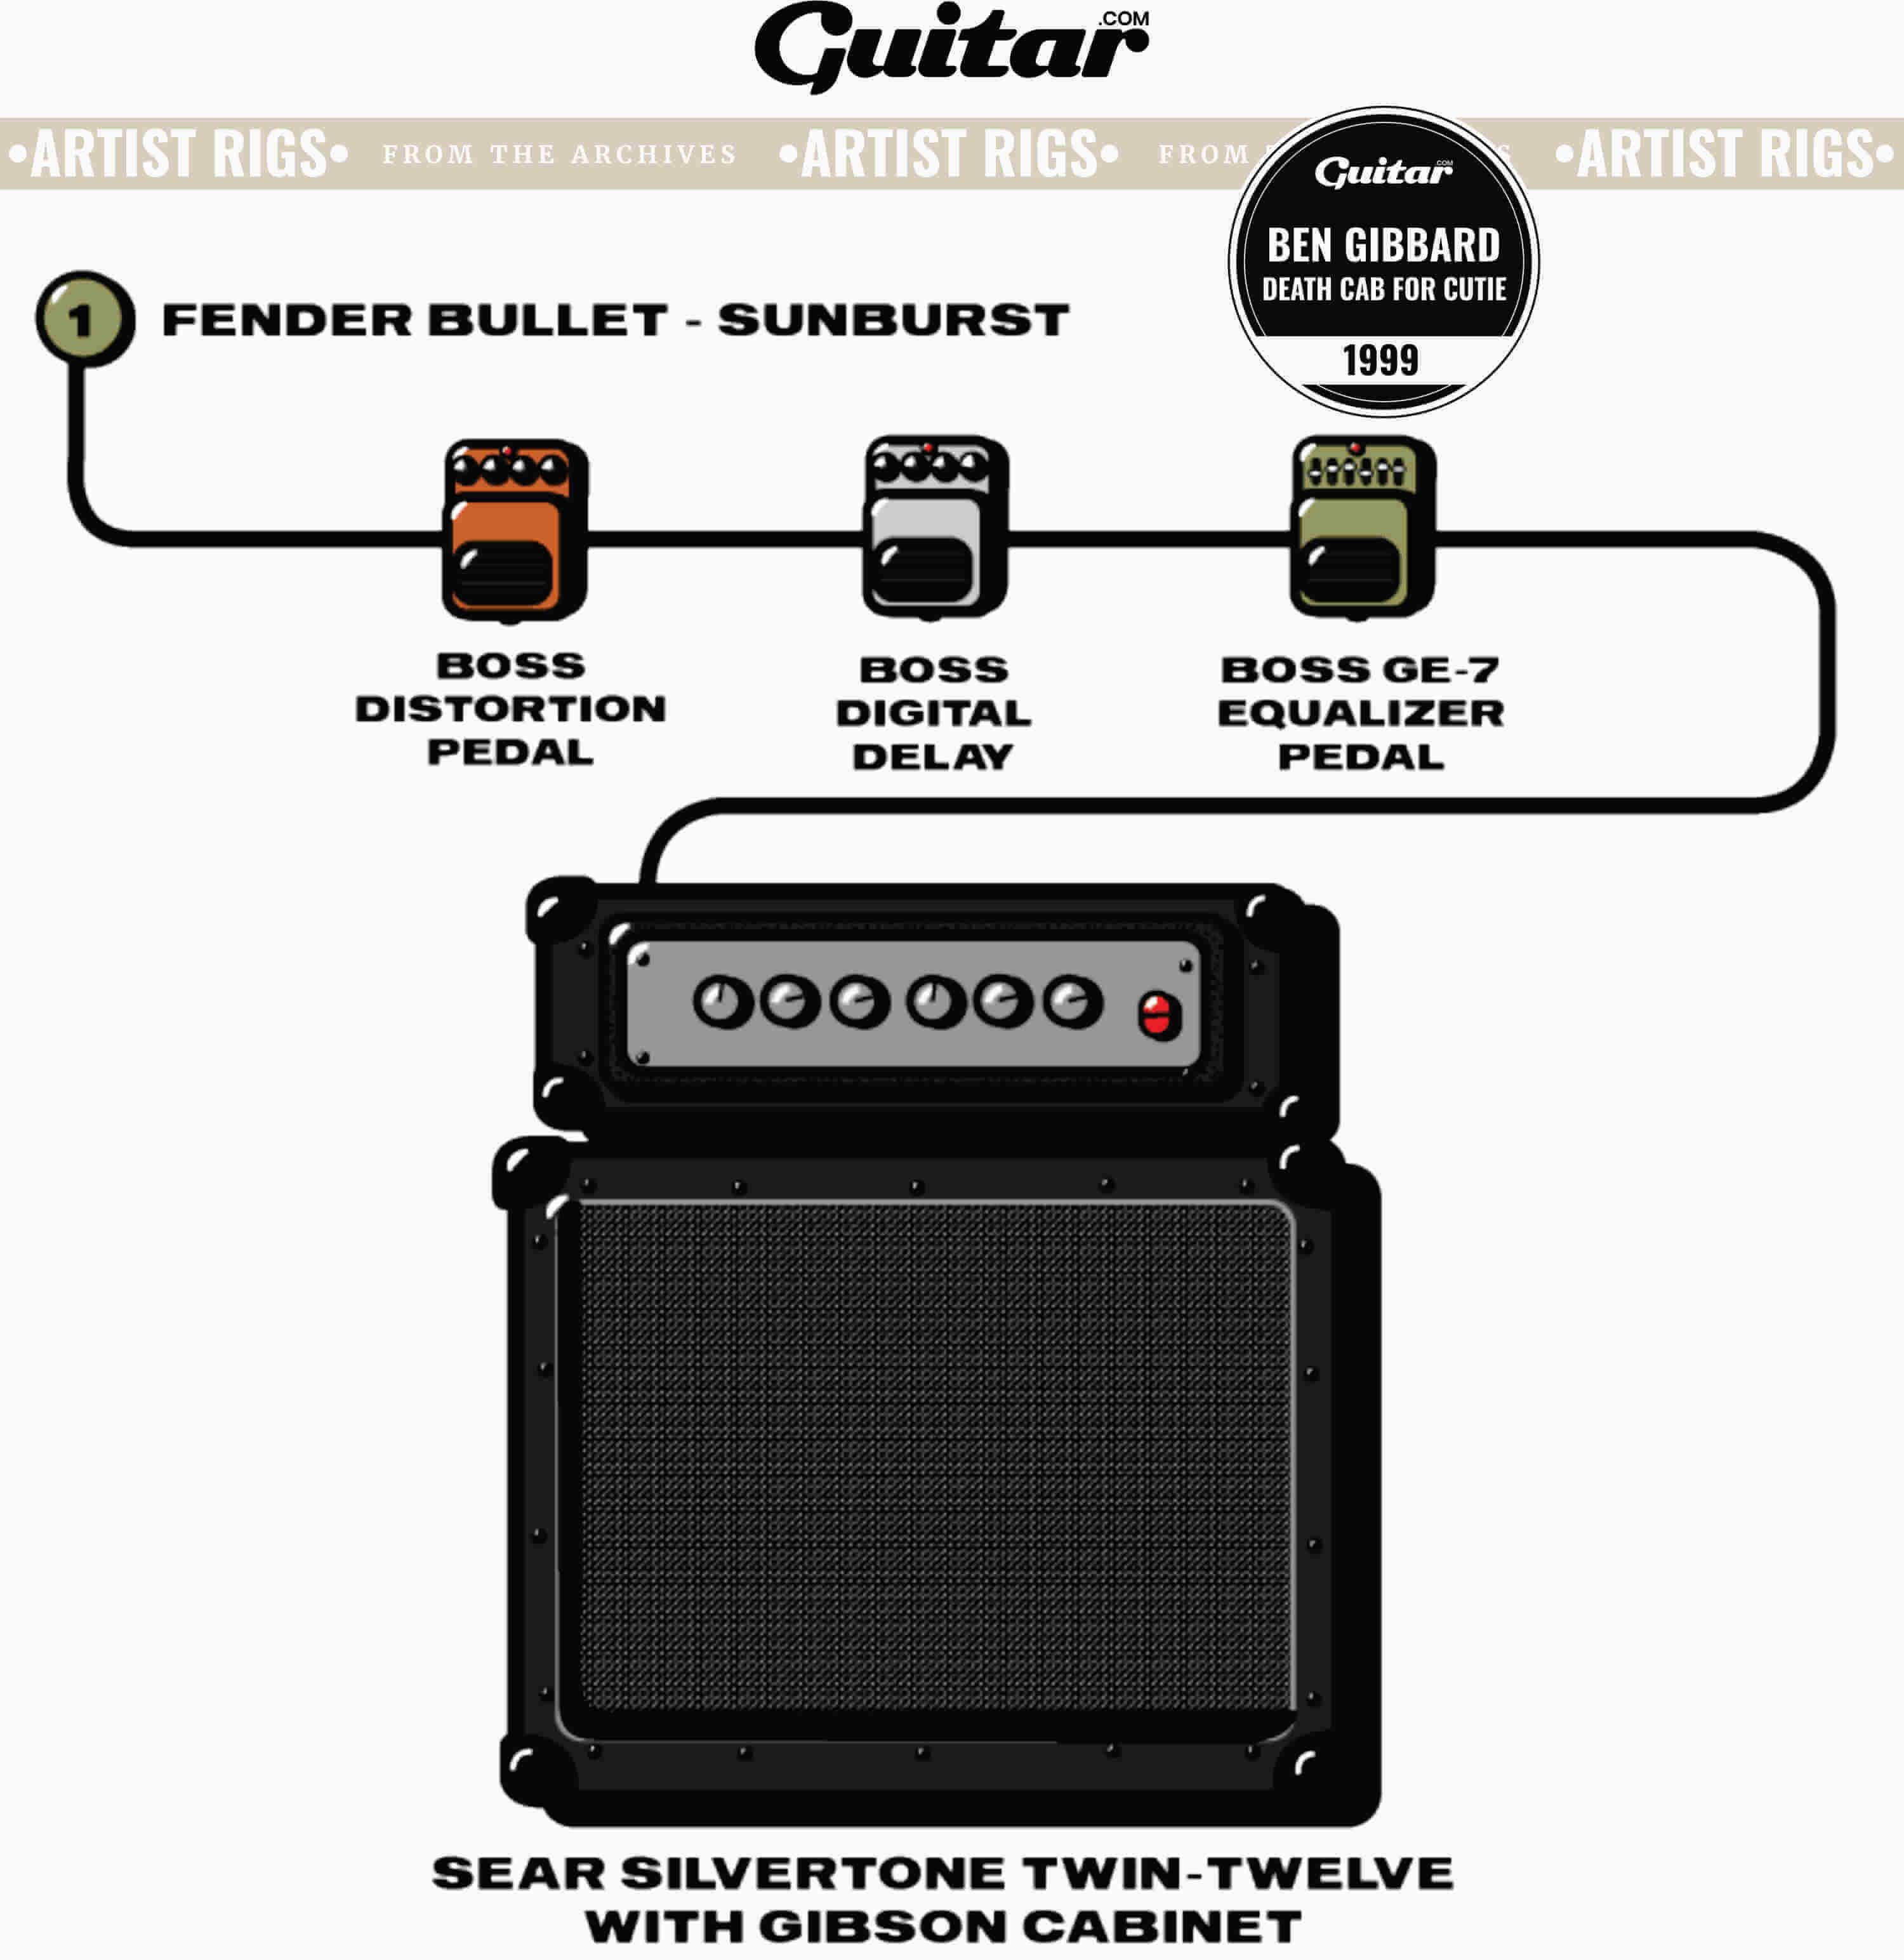 Rig Diagram: Ben Gibbard, Death Cab For Cutie (1999)